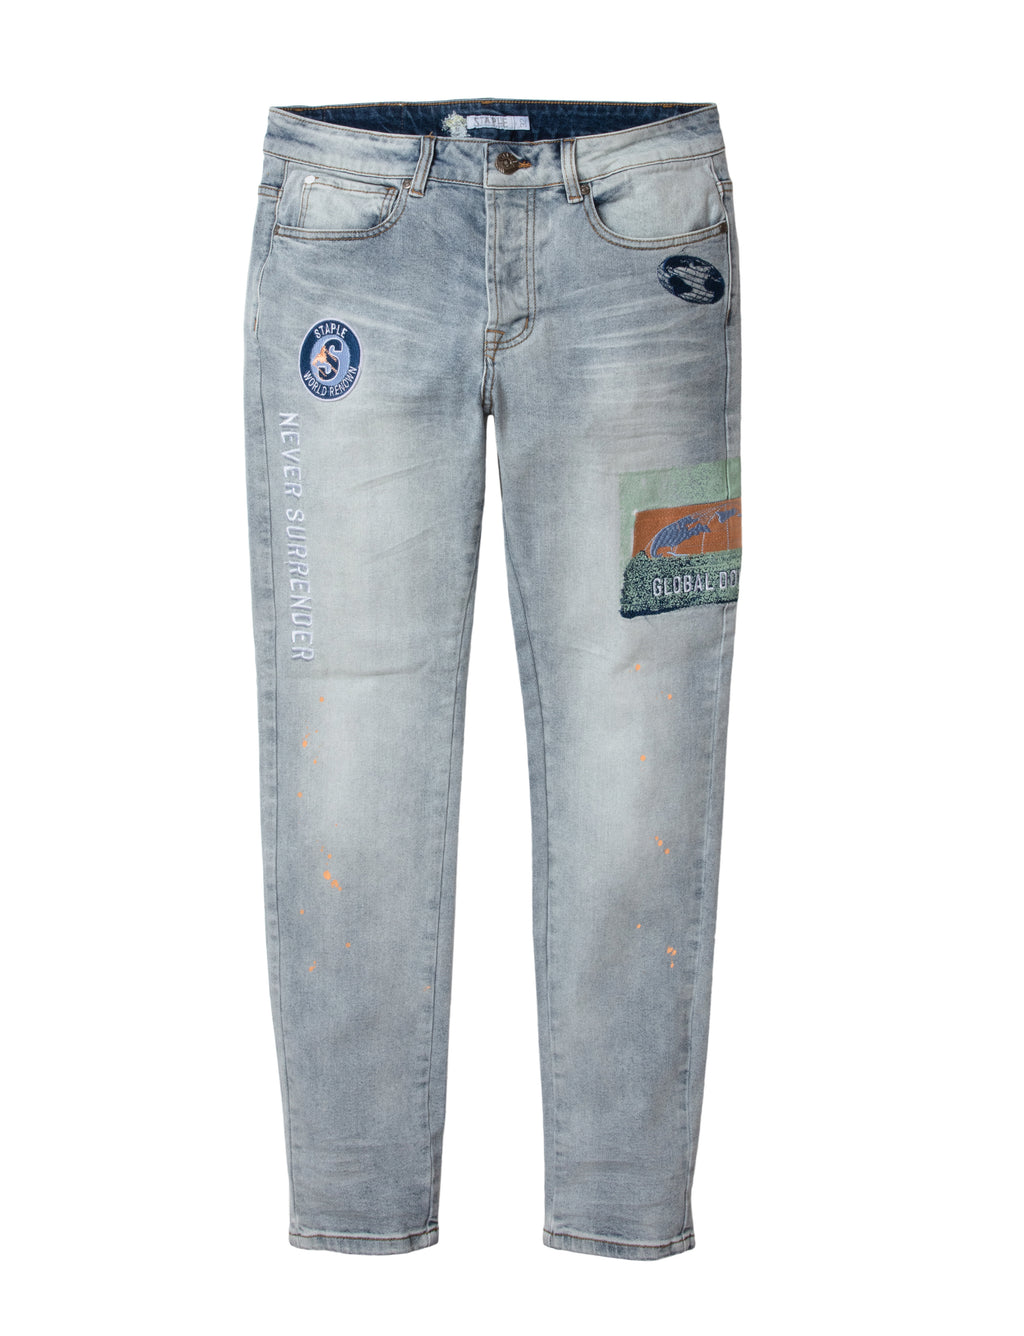 Spray Denim Pantss - Jeans | Staple Pigeon